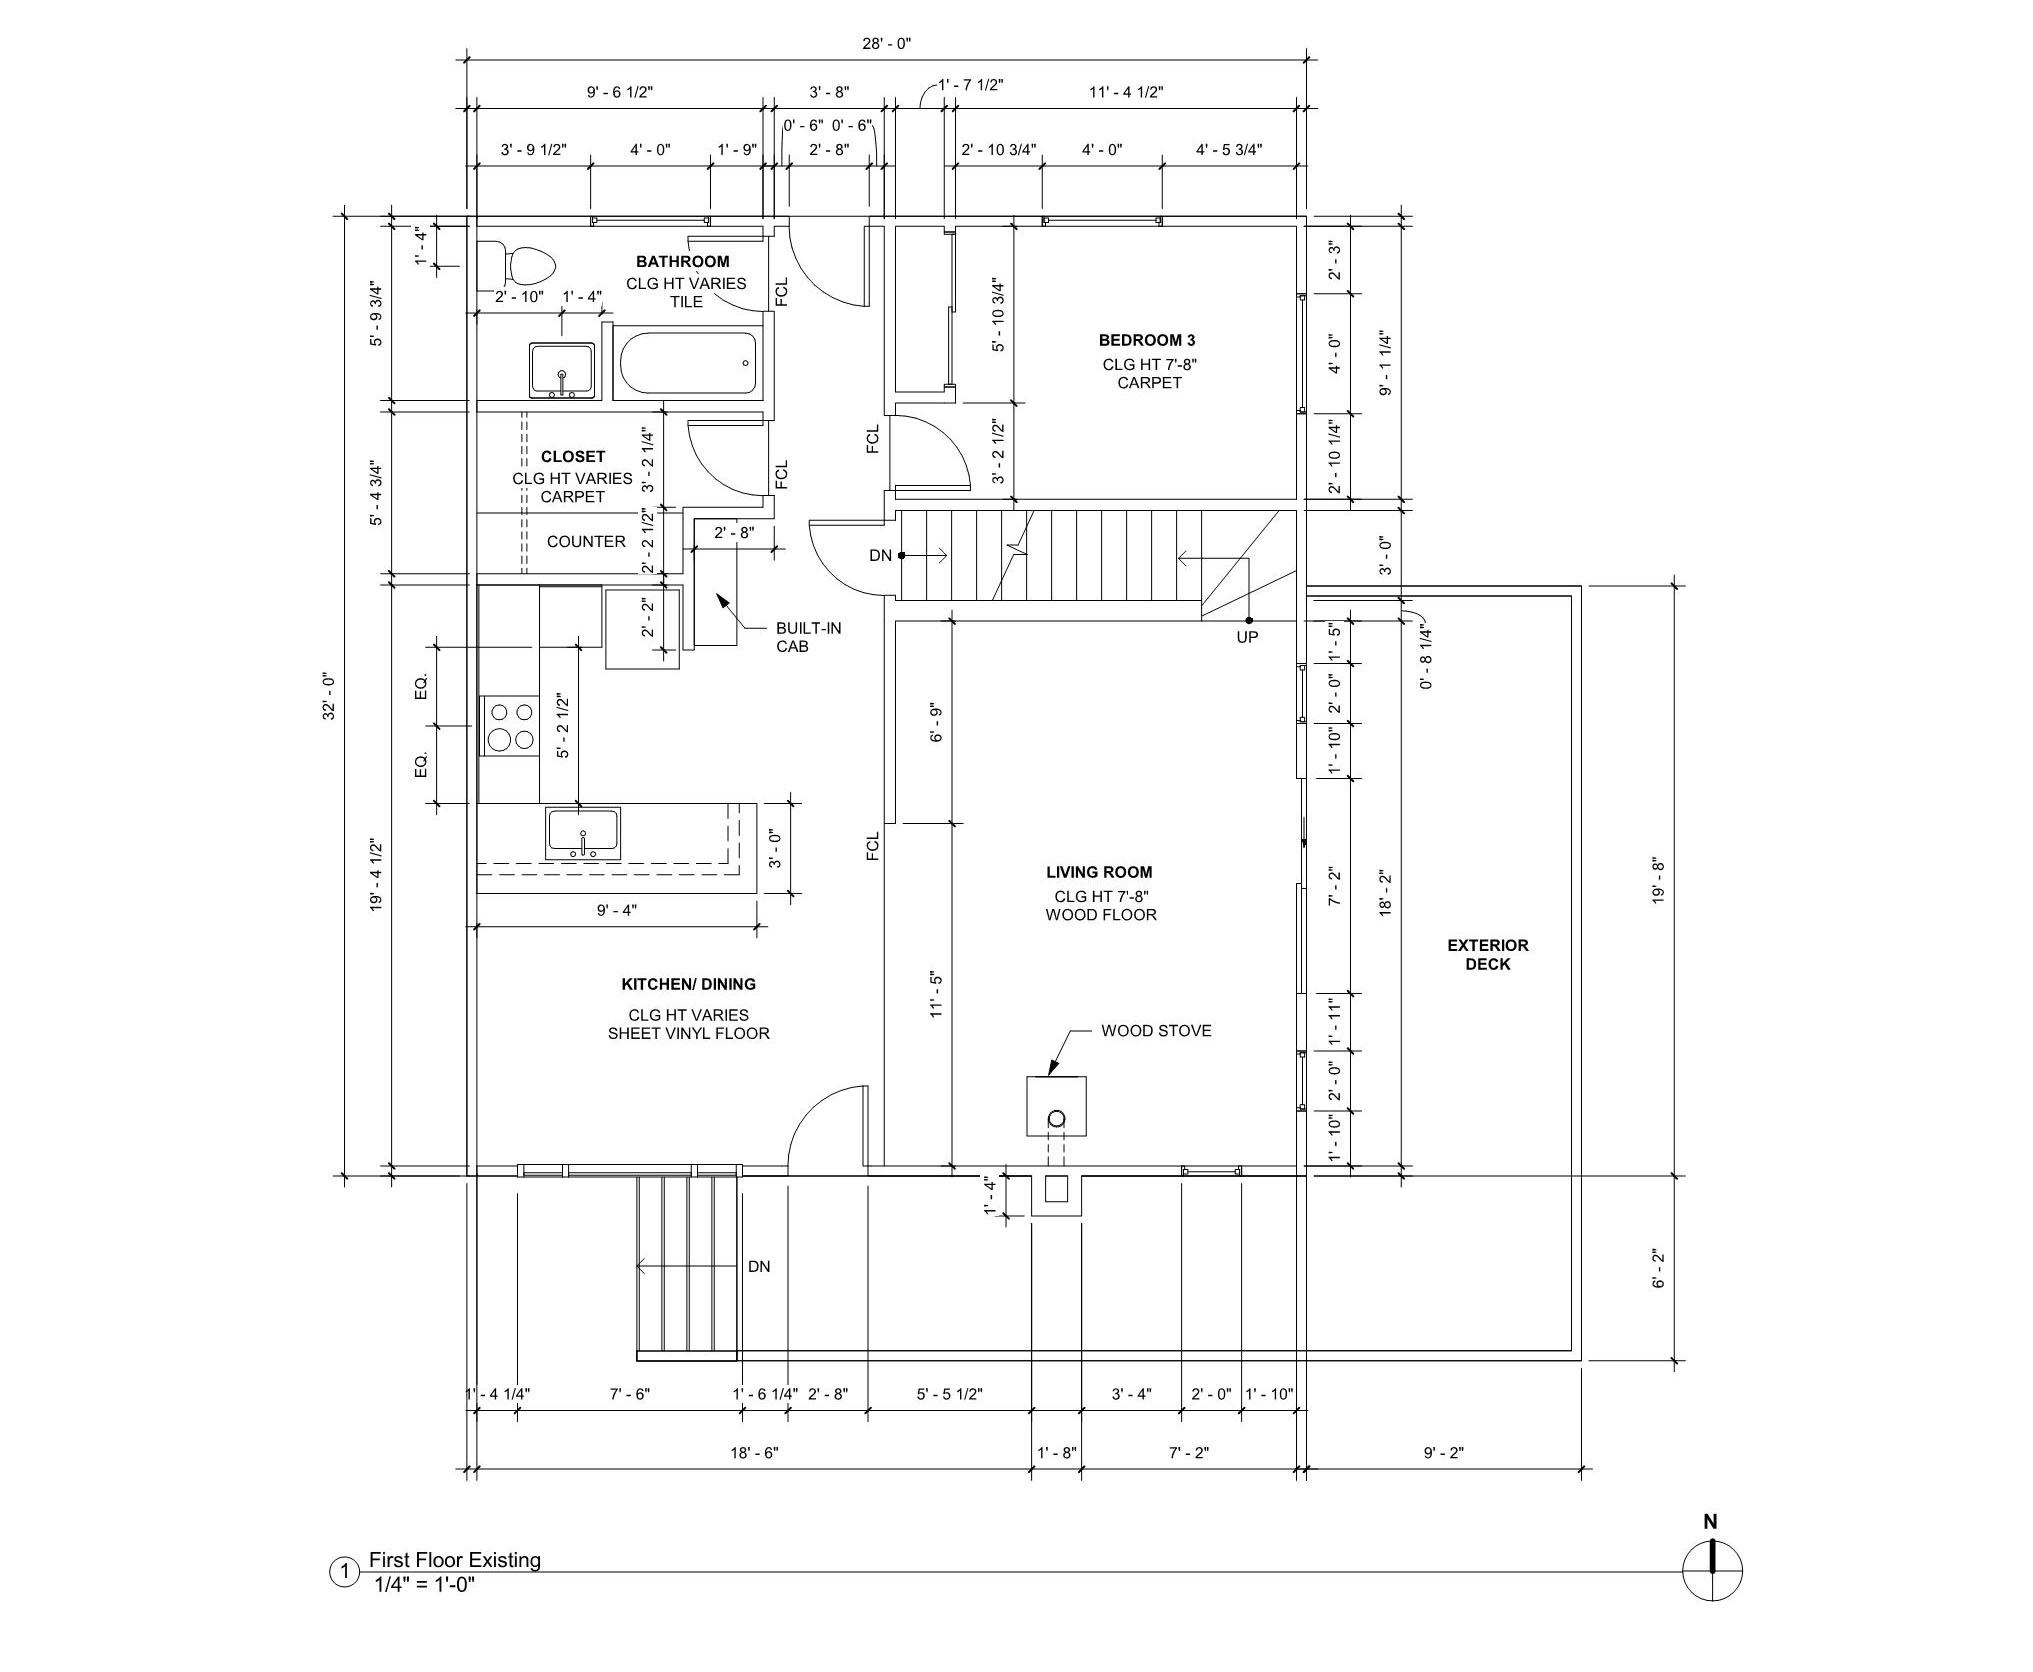 How To Make A New Floor Plan In Revit | Flisol Home